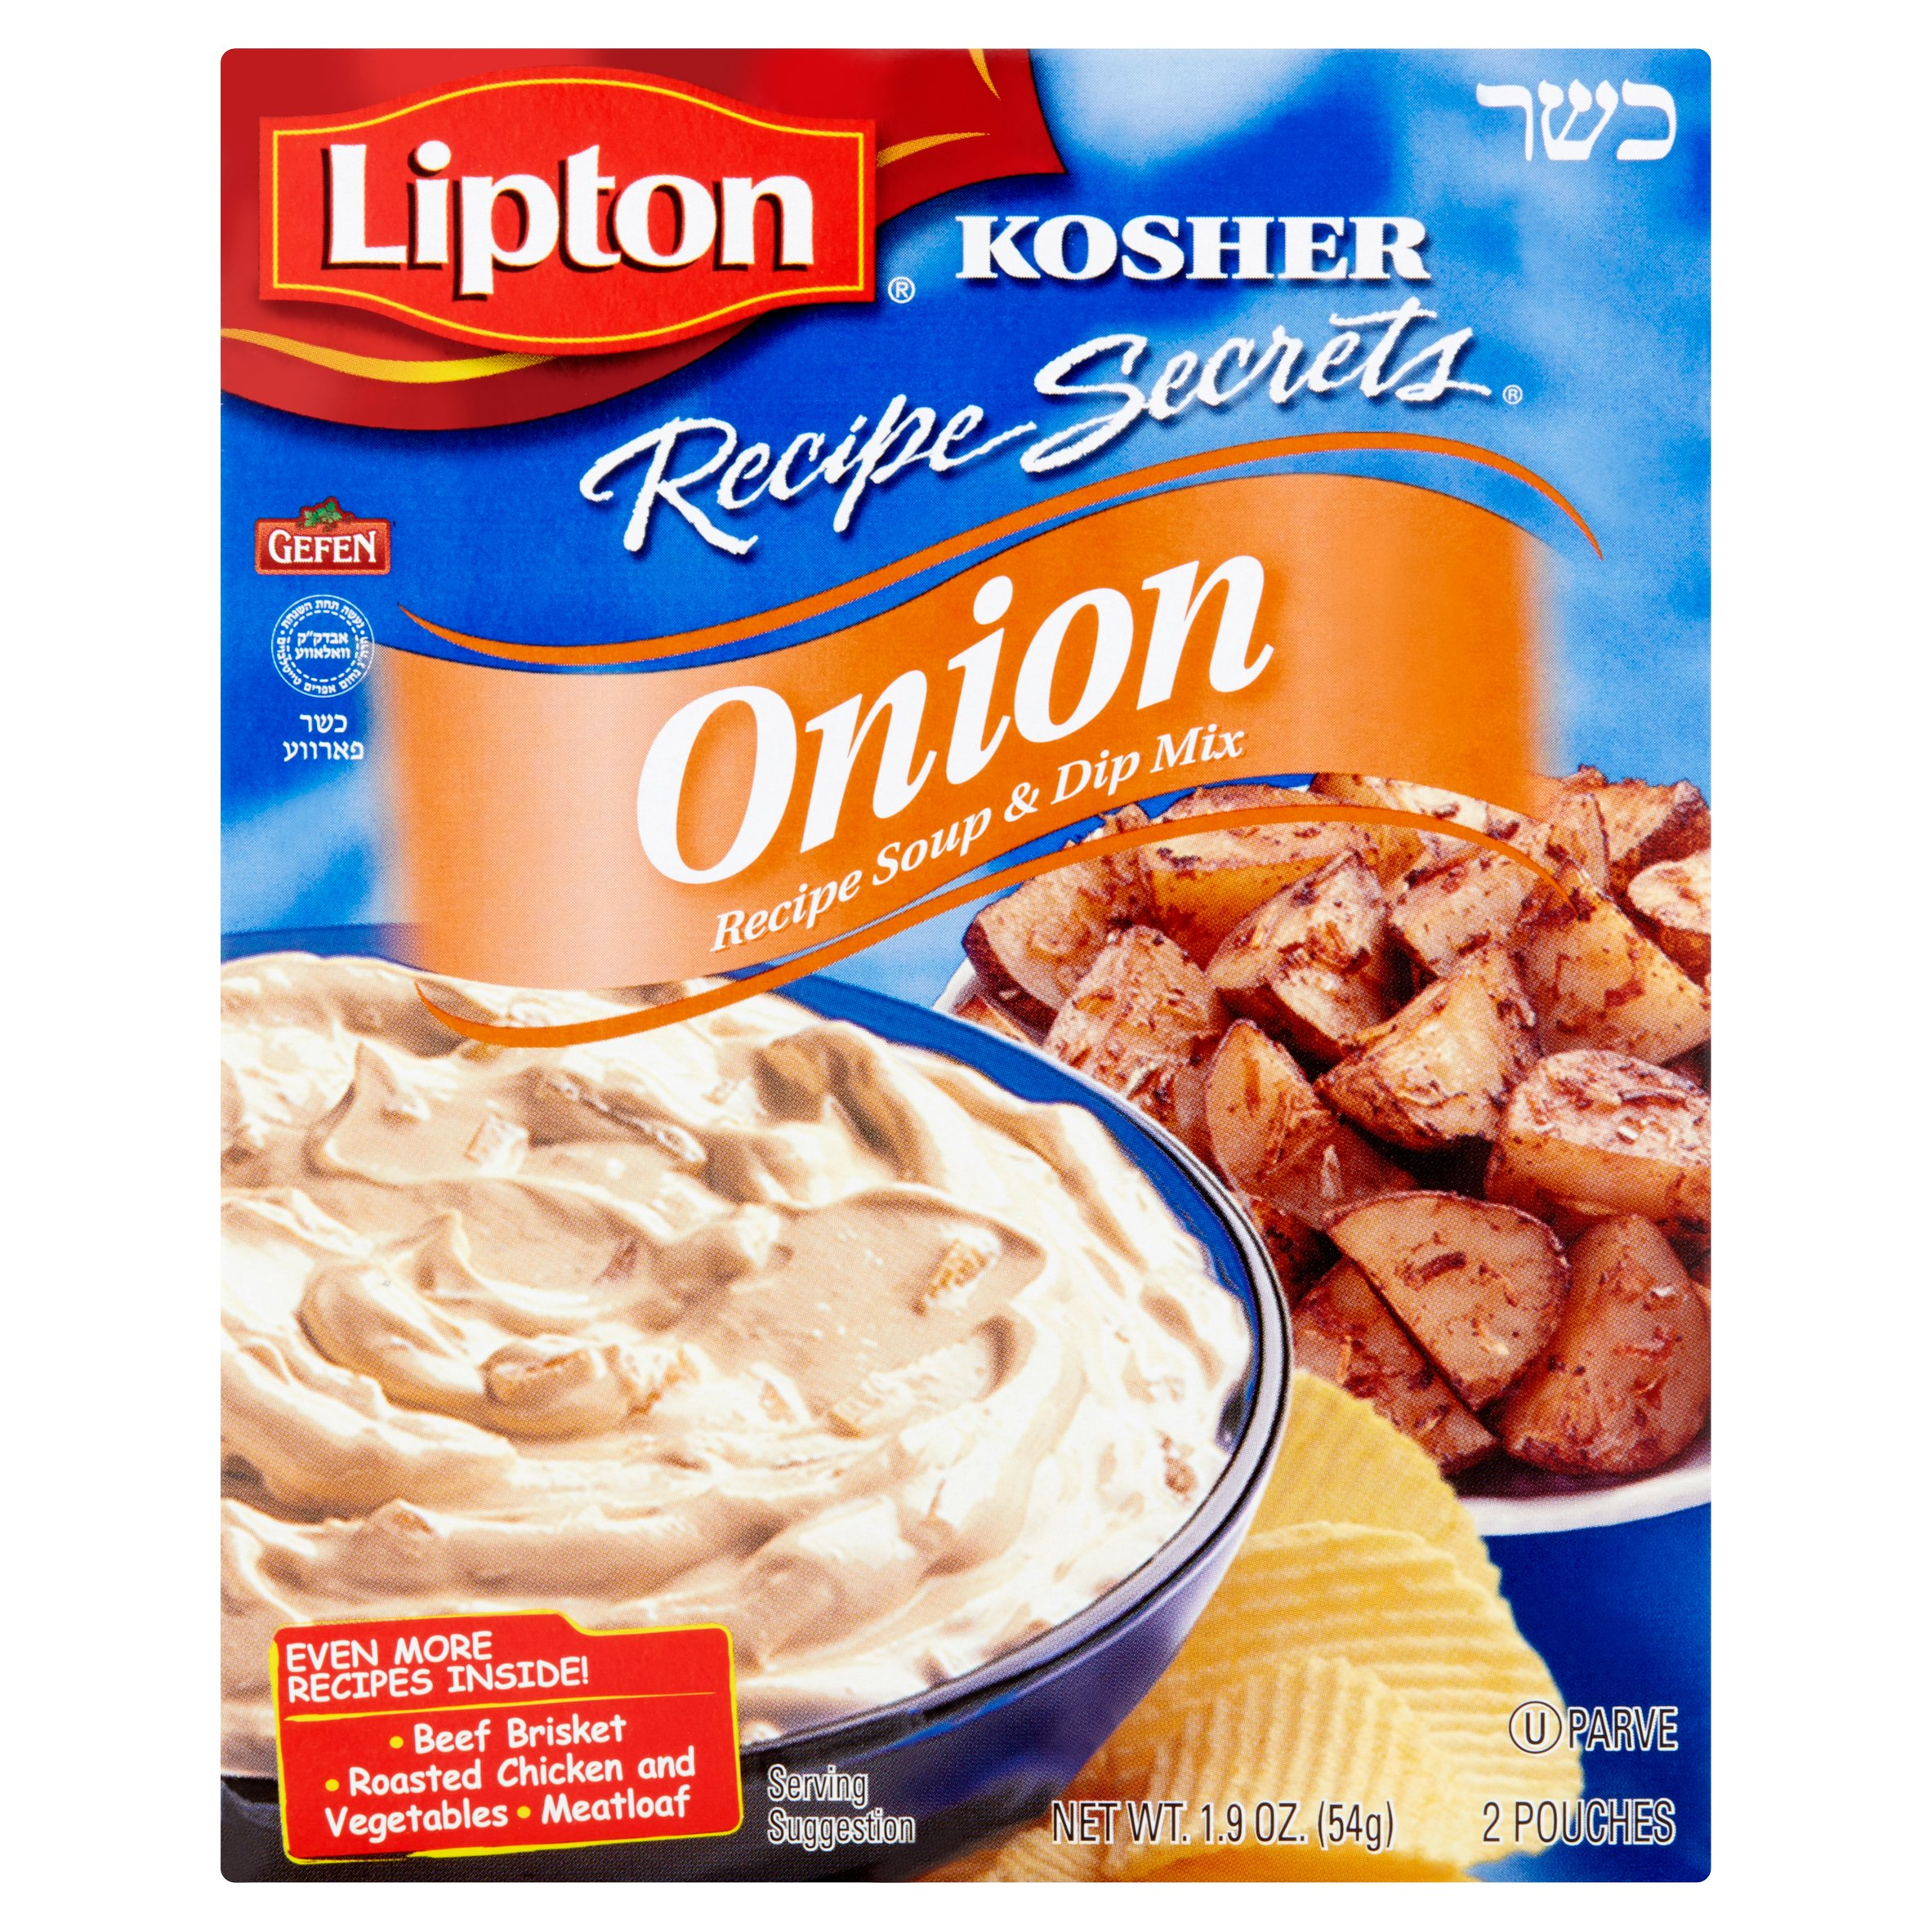 Lipton Recipe Secrets Kosher Onion Recipe Soup & Dip Mix, 2 count, 1.2 oz